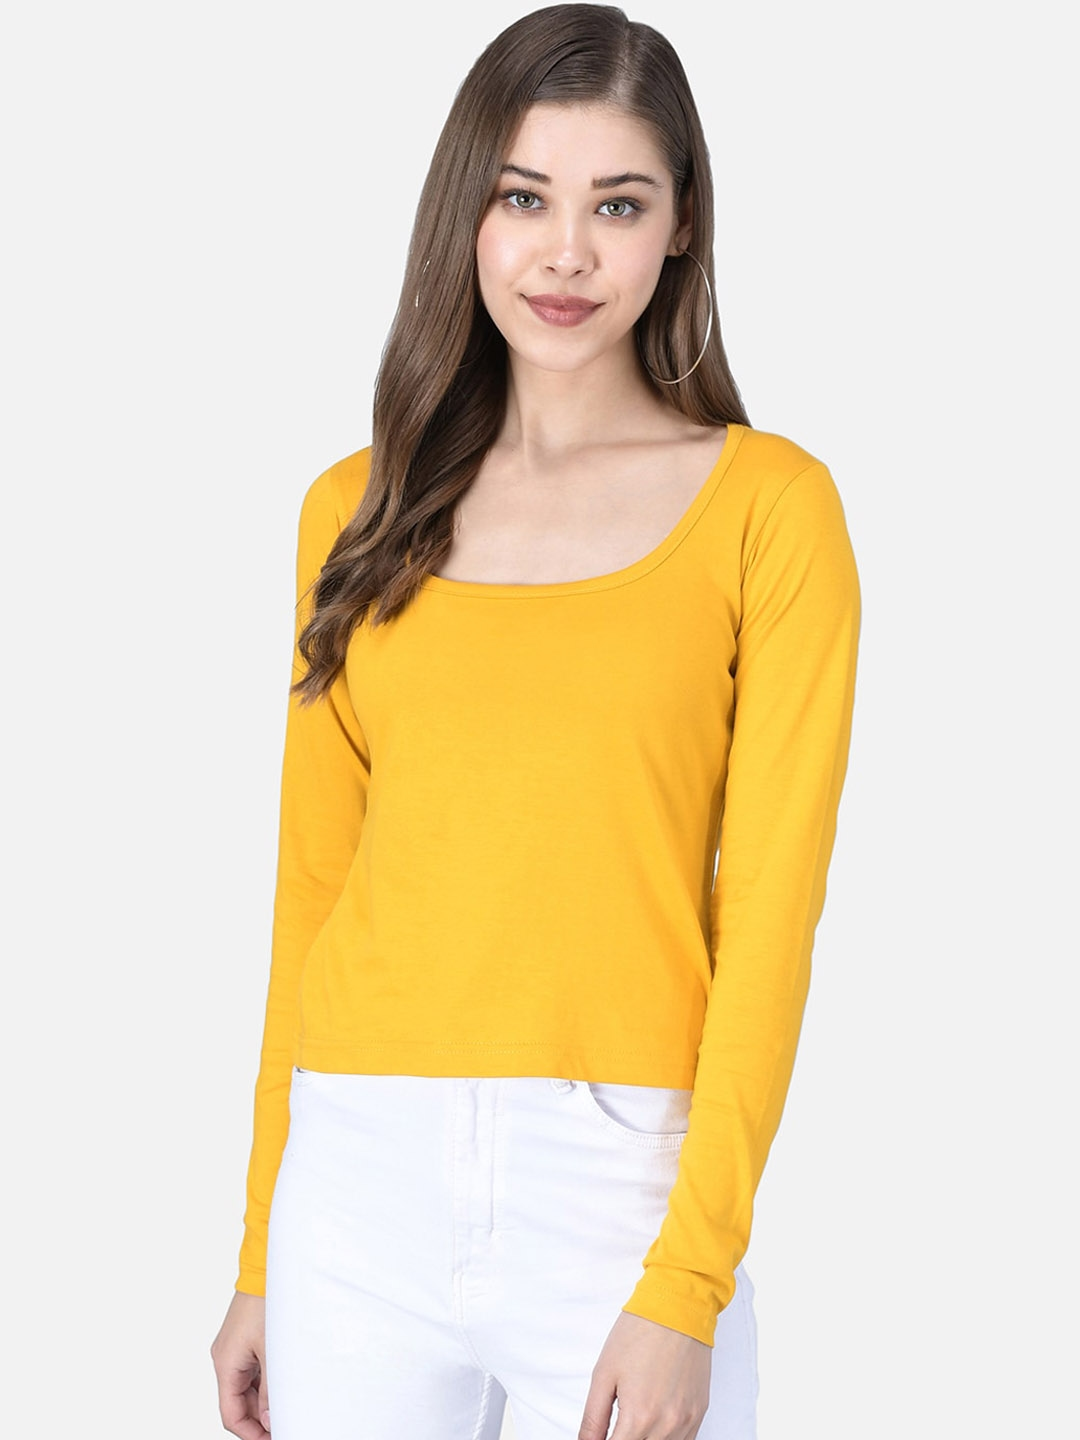 The Dry State Women Yellow Solid Scoop Neck T shirt